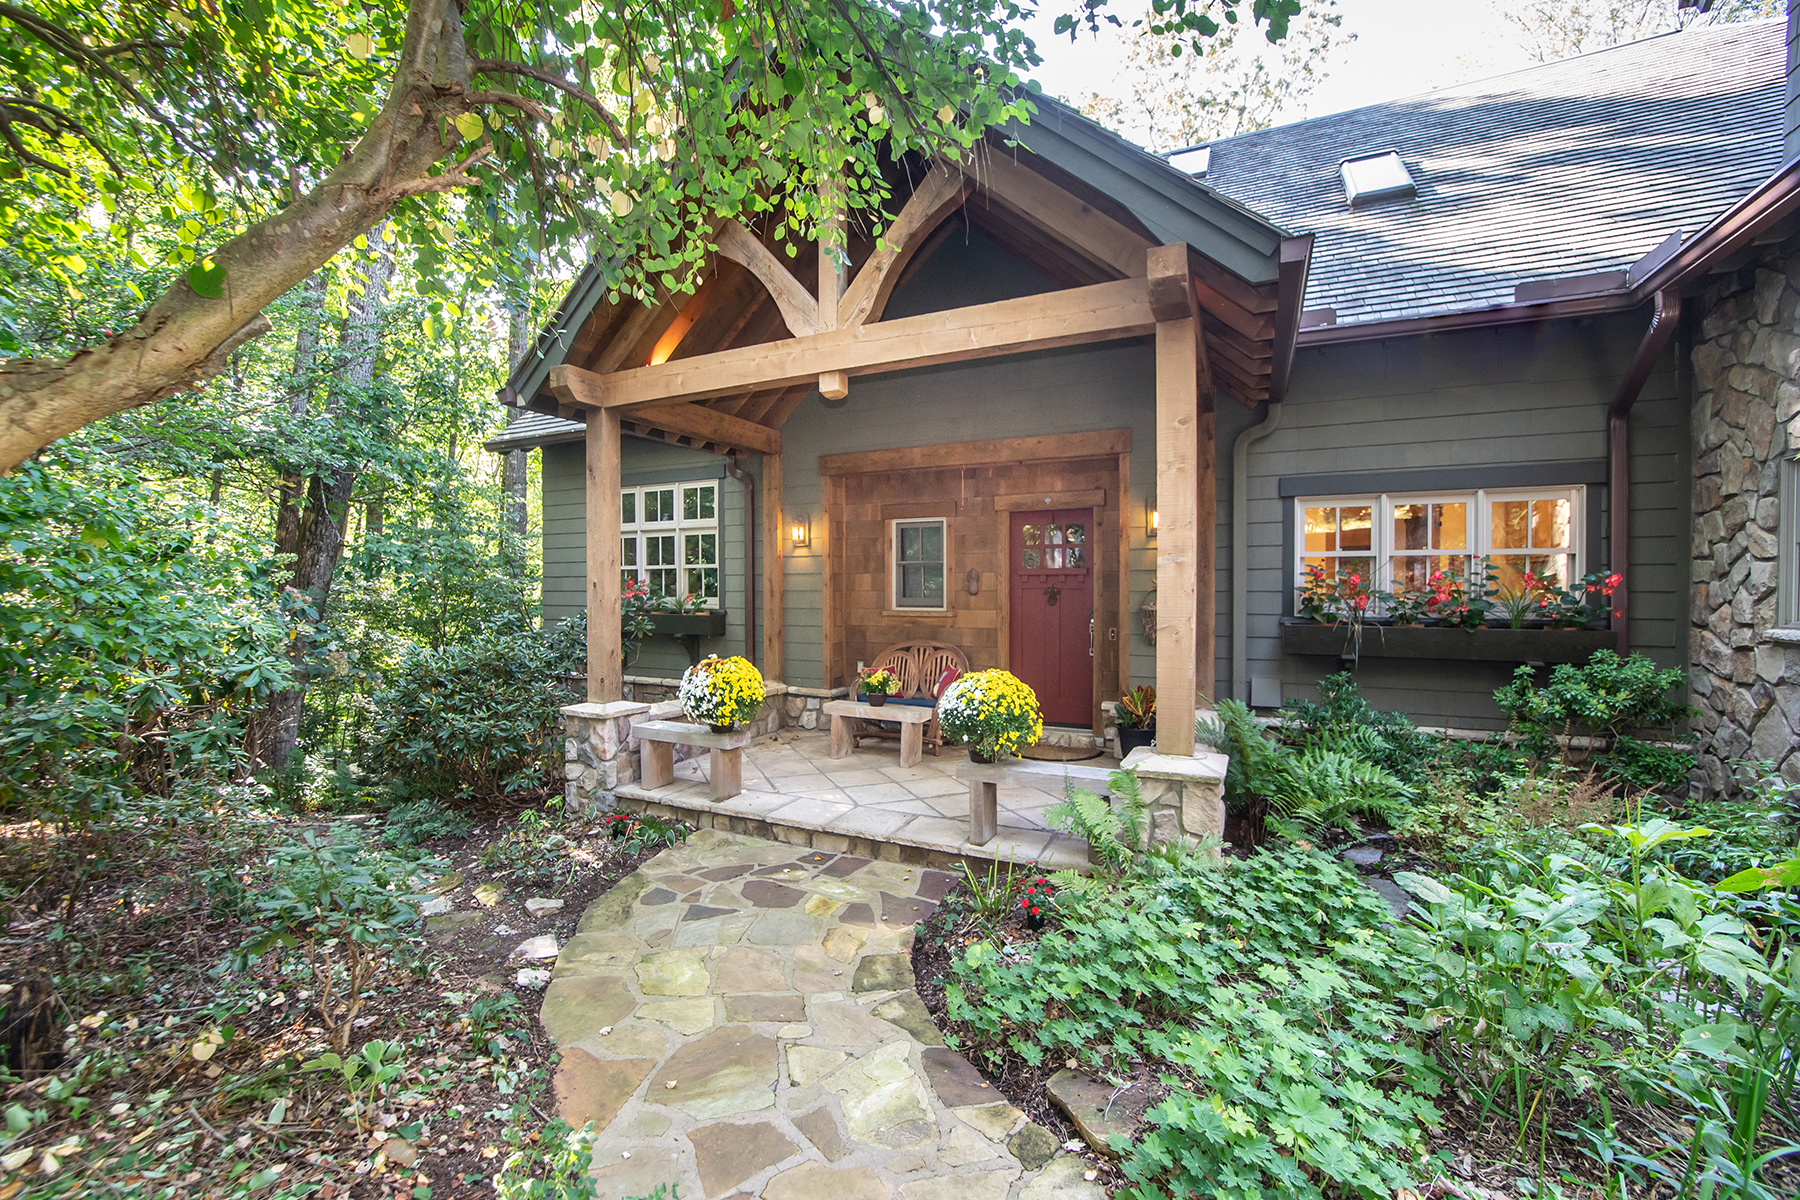 Single Family Homes for Active at TIMBER CREEK - BLOWING ROCK 131 W Stone Dr Blowing Rock, North Carolina 28605 United States